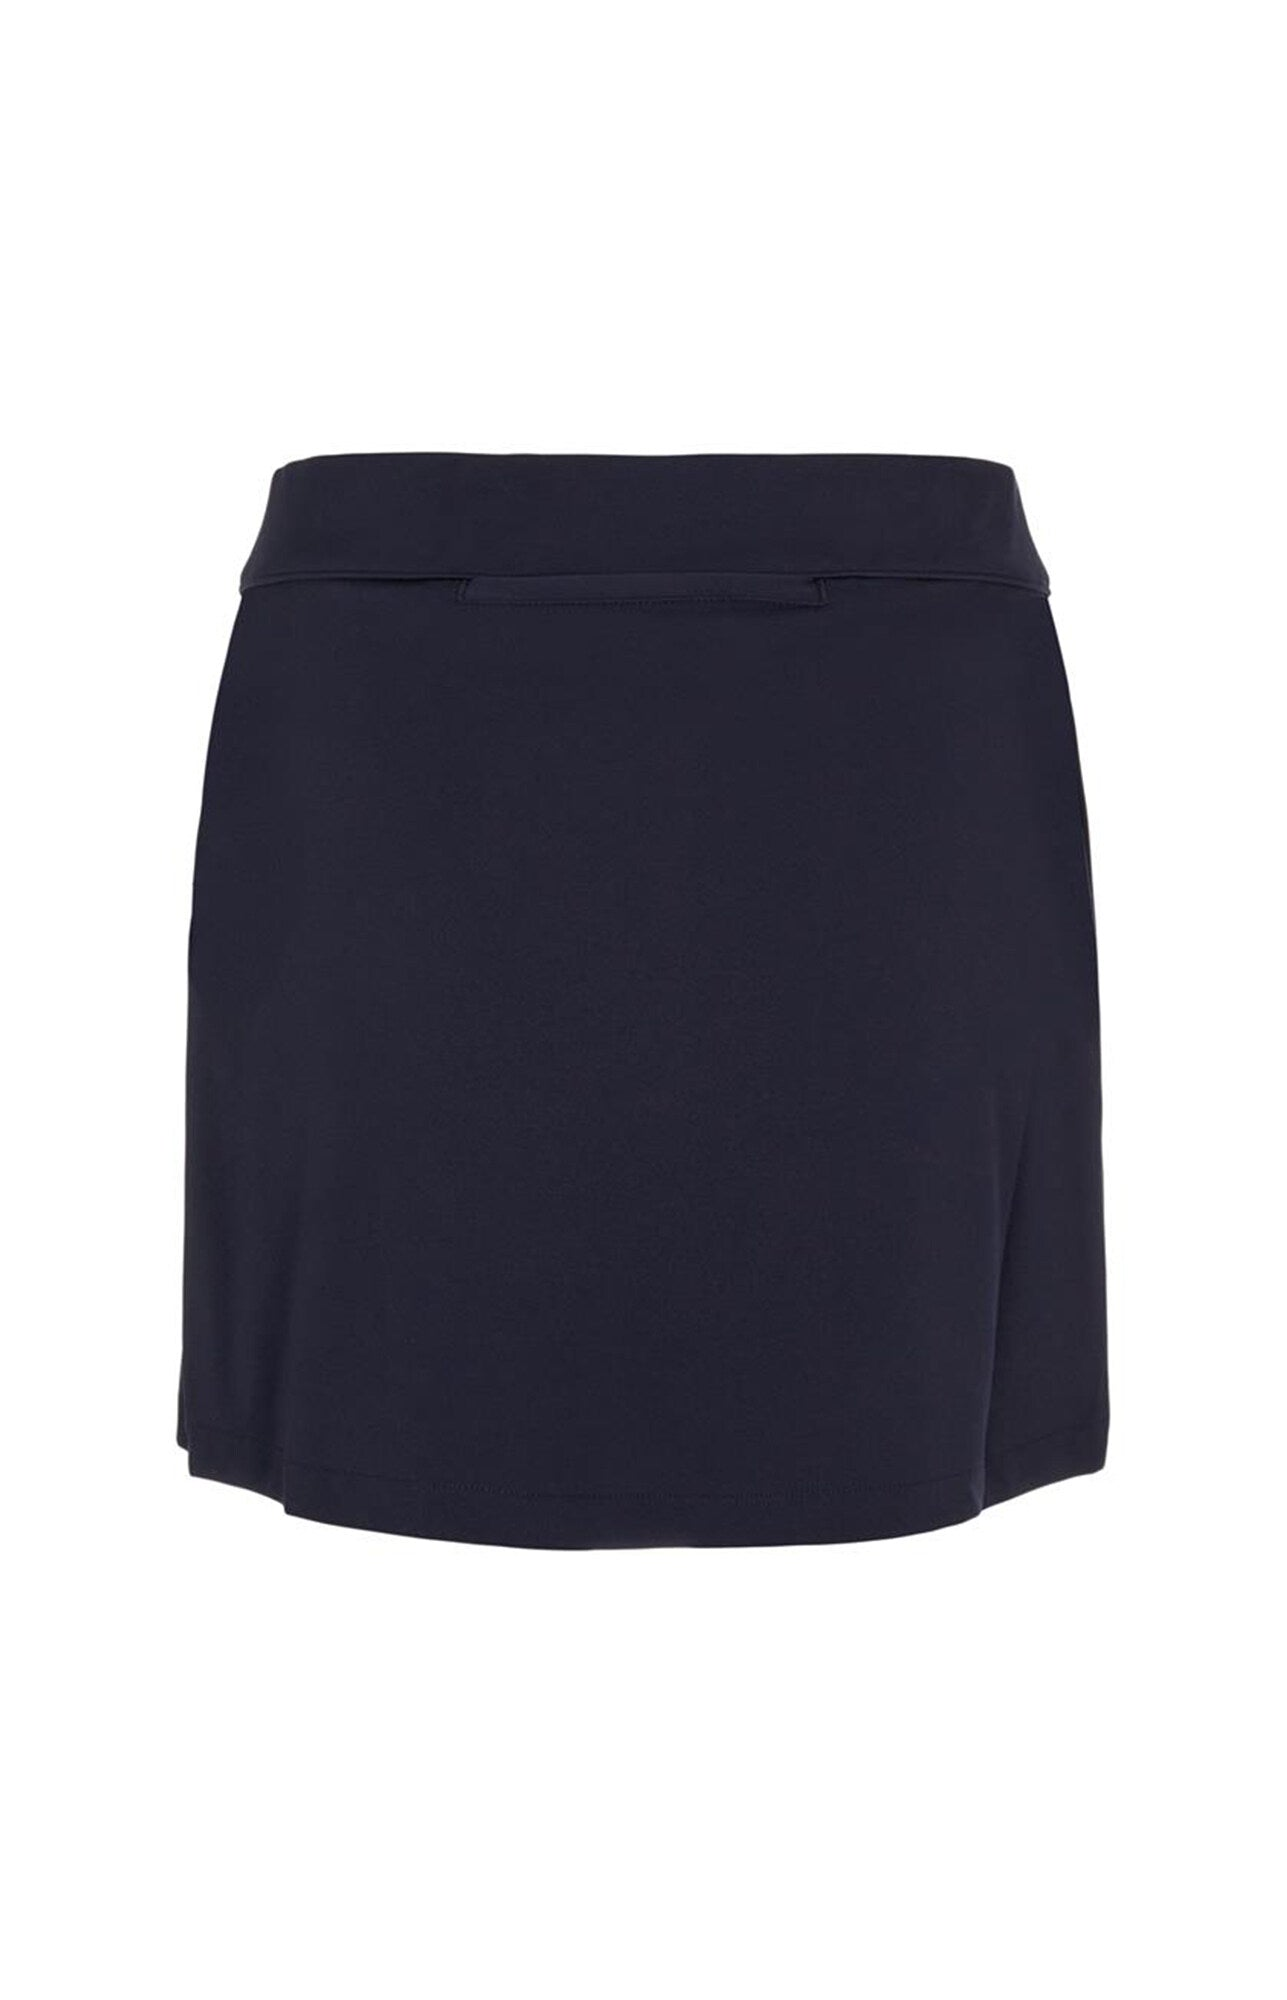 제이린드버그 테아 스커트 J Lindeberg Thea Golf Skirt - JL Navy